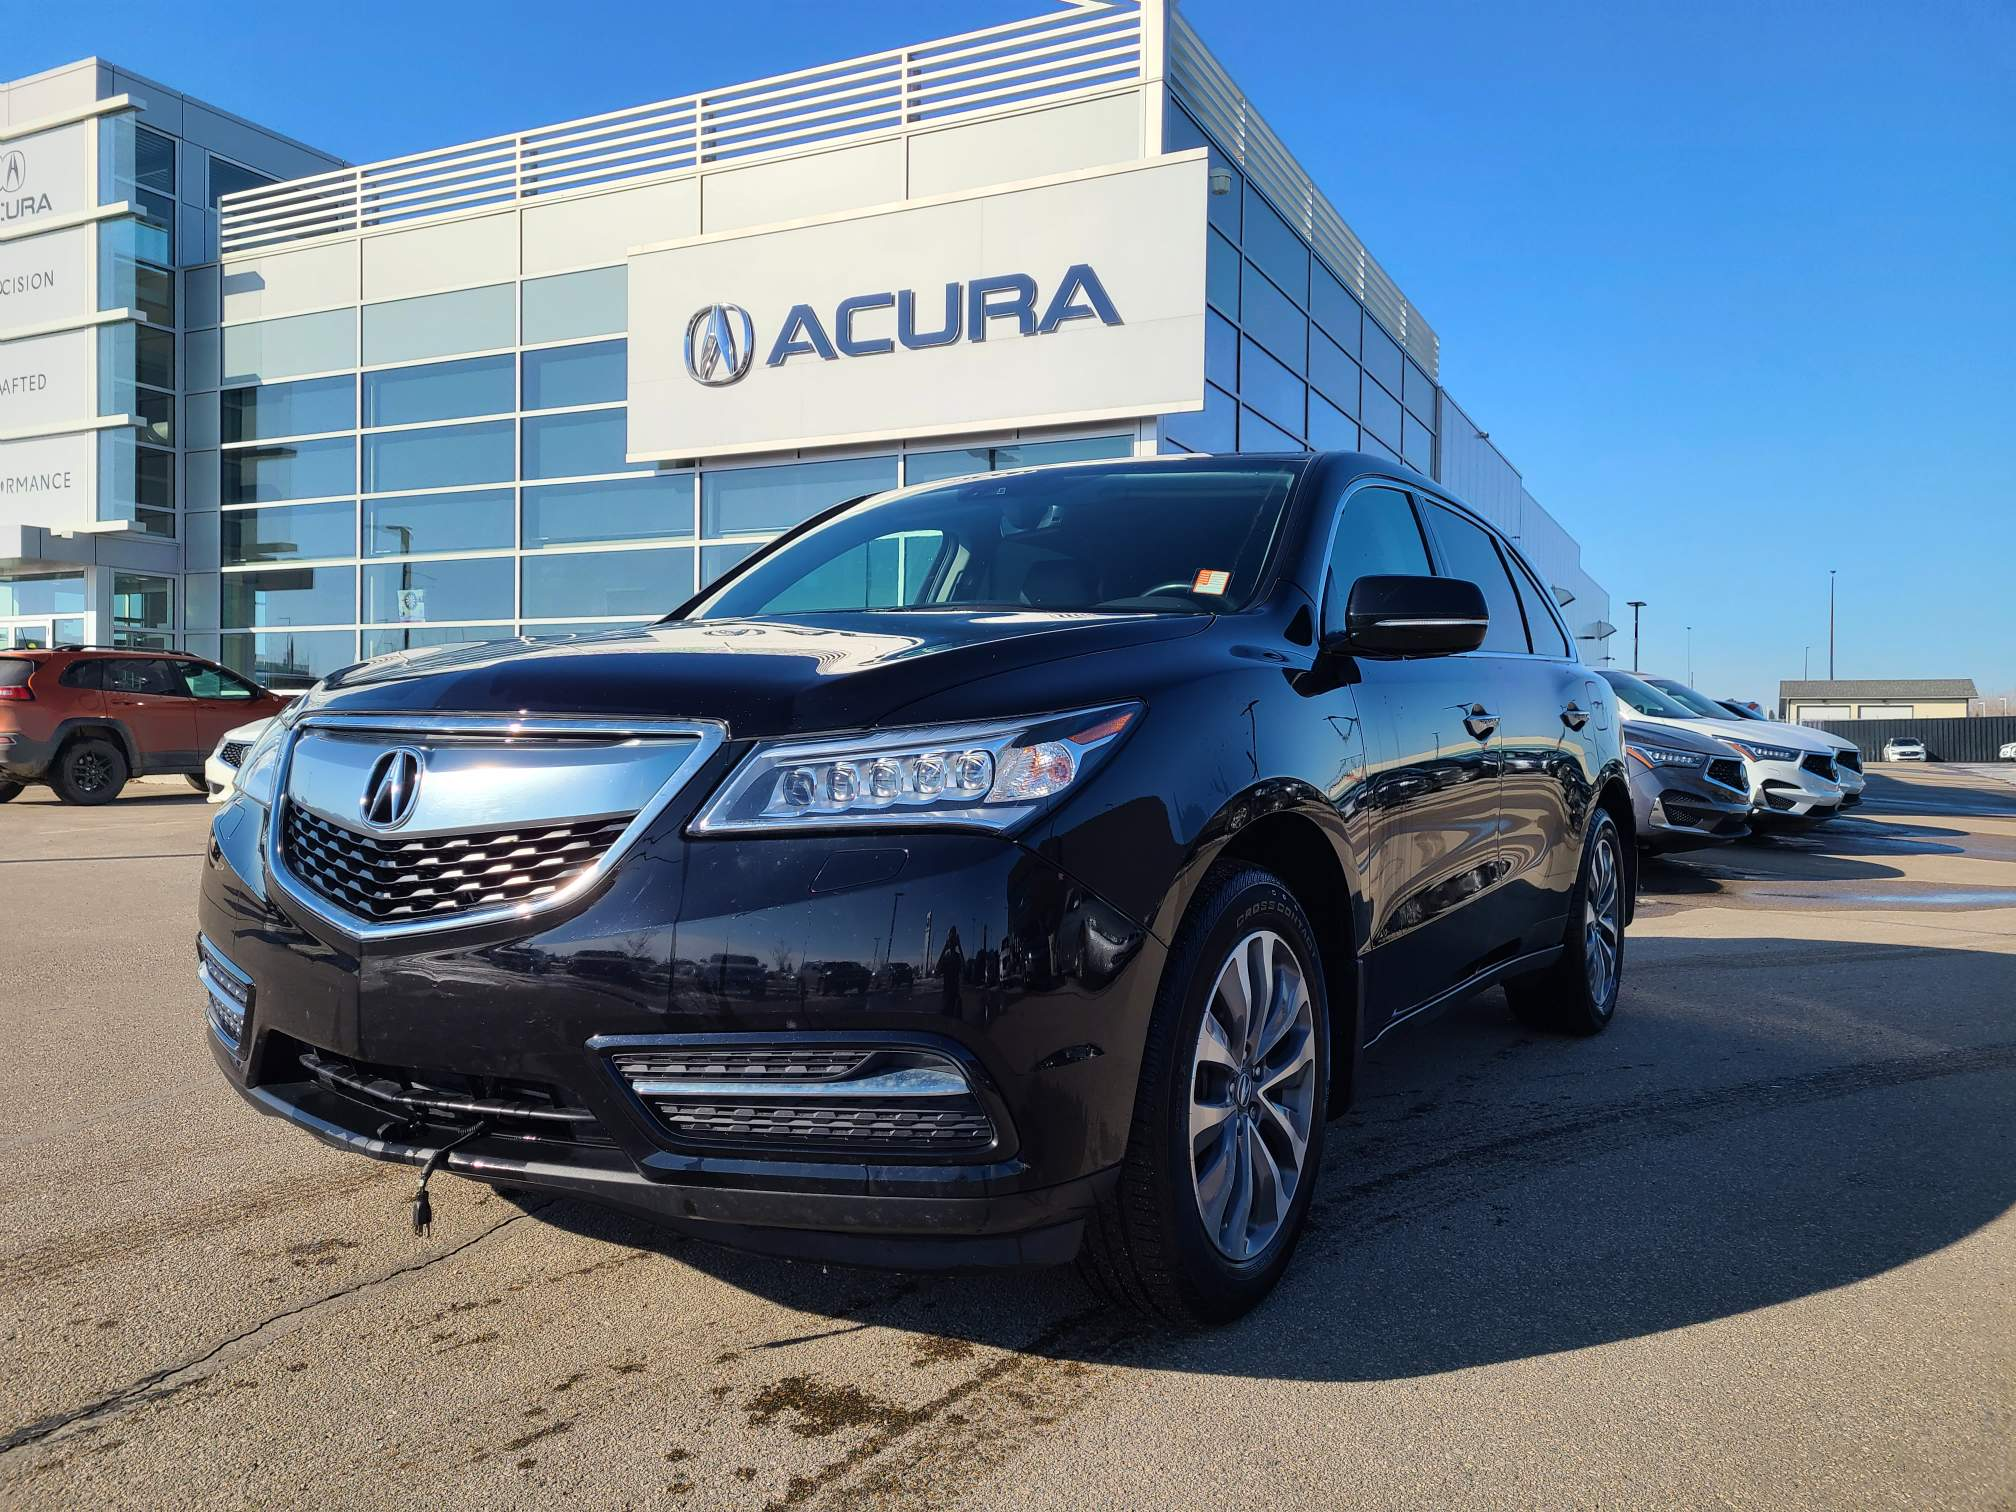 used 2016 Acura MDX car, priced at $29,632